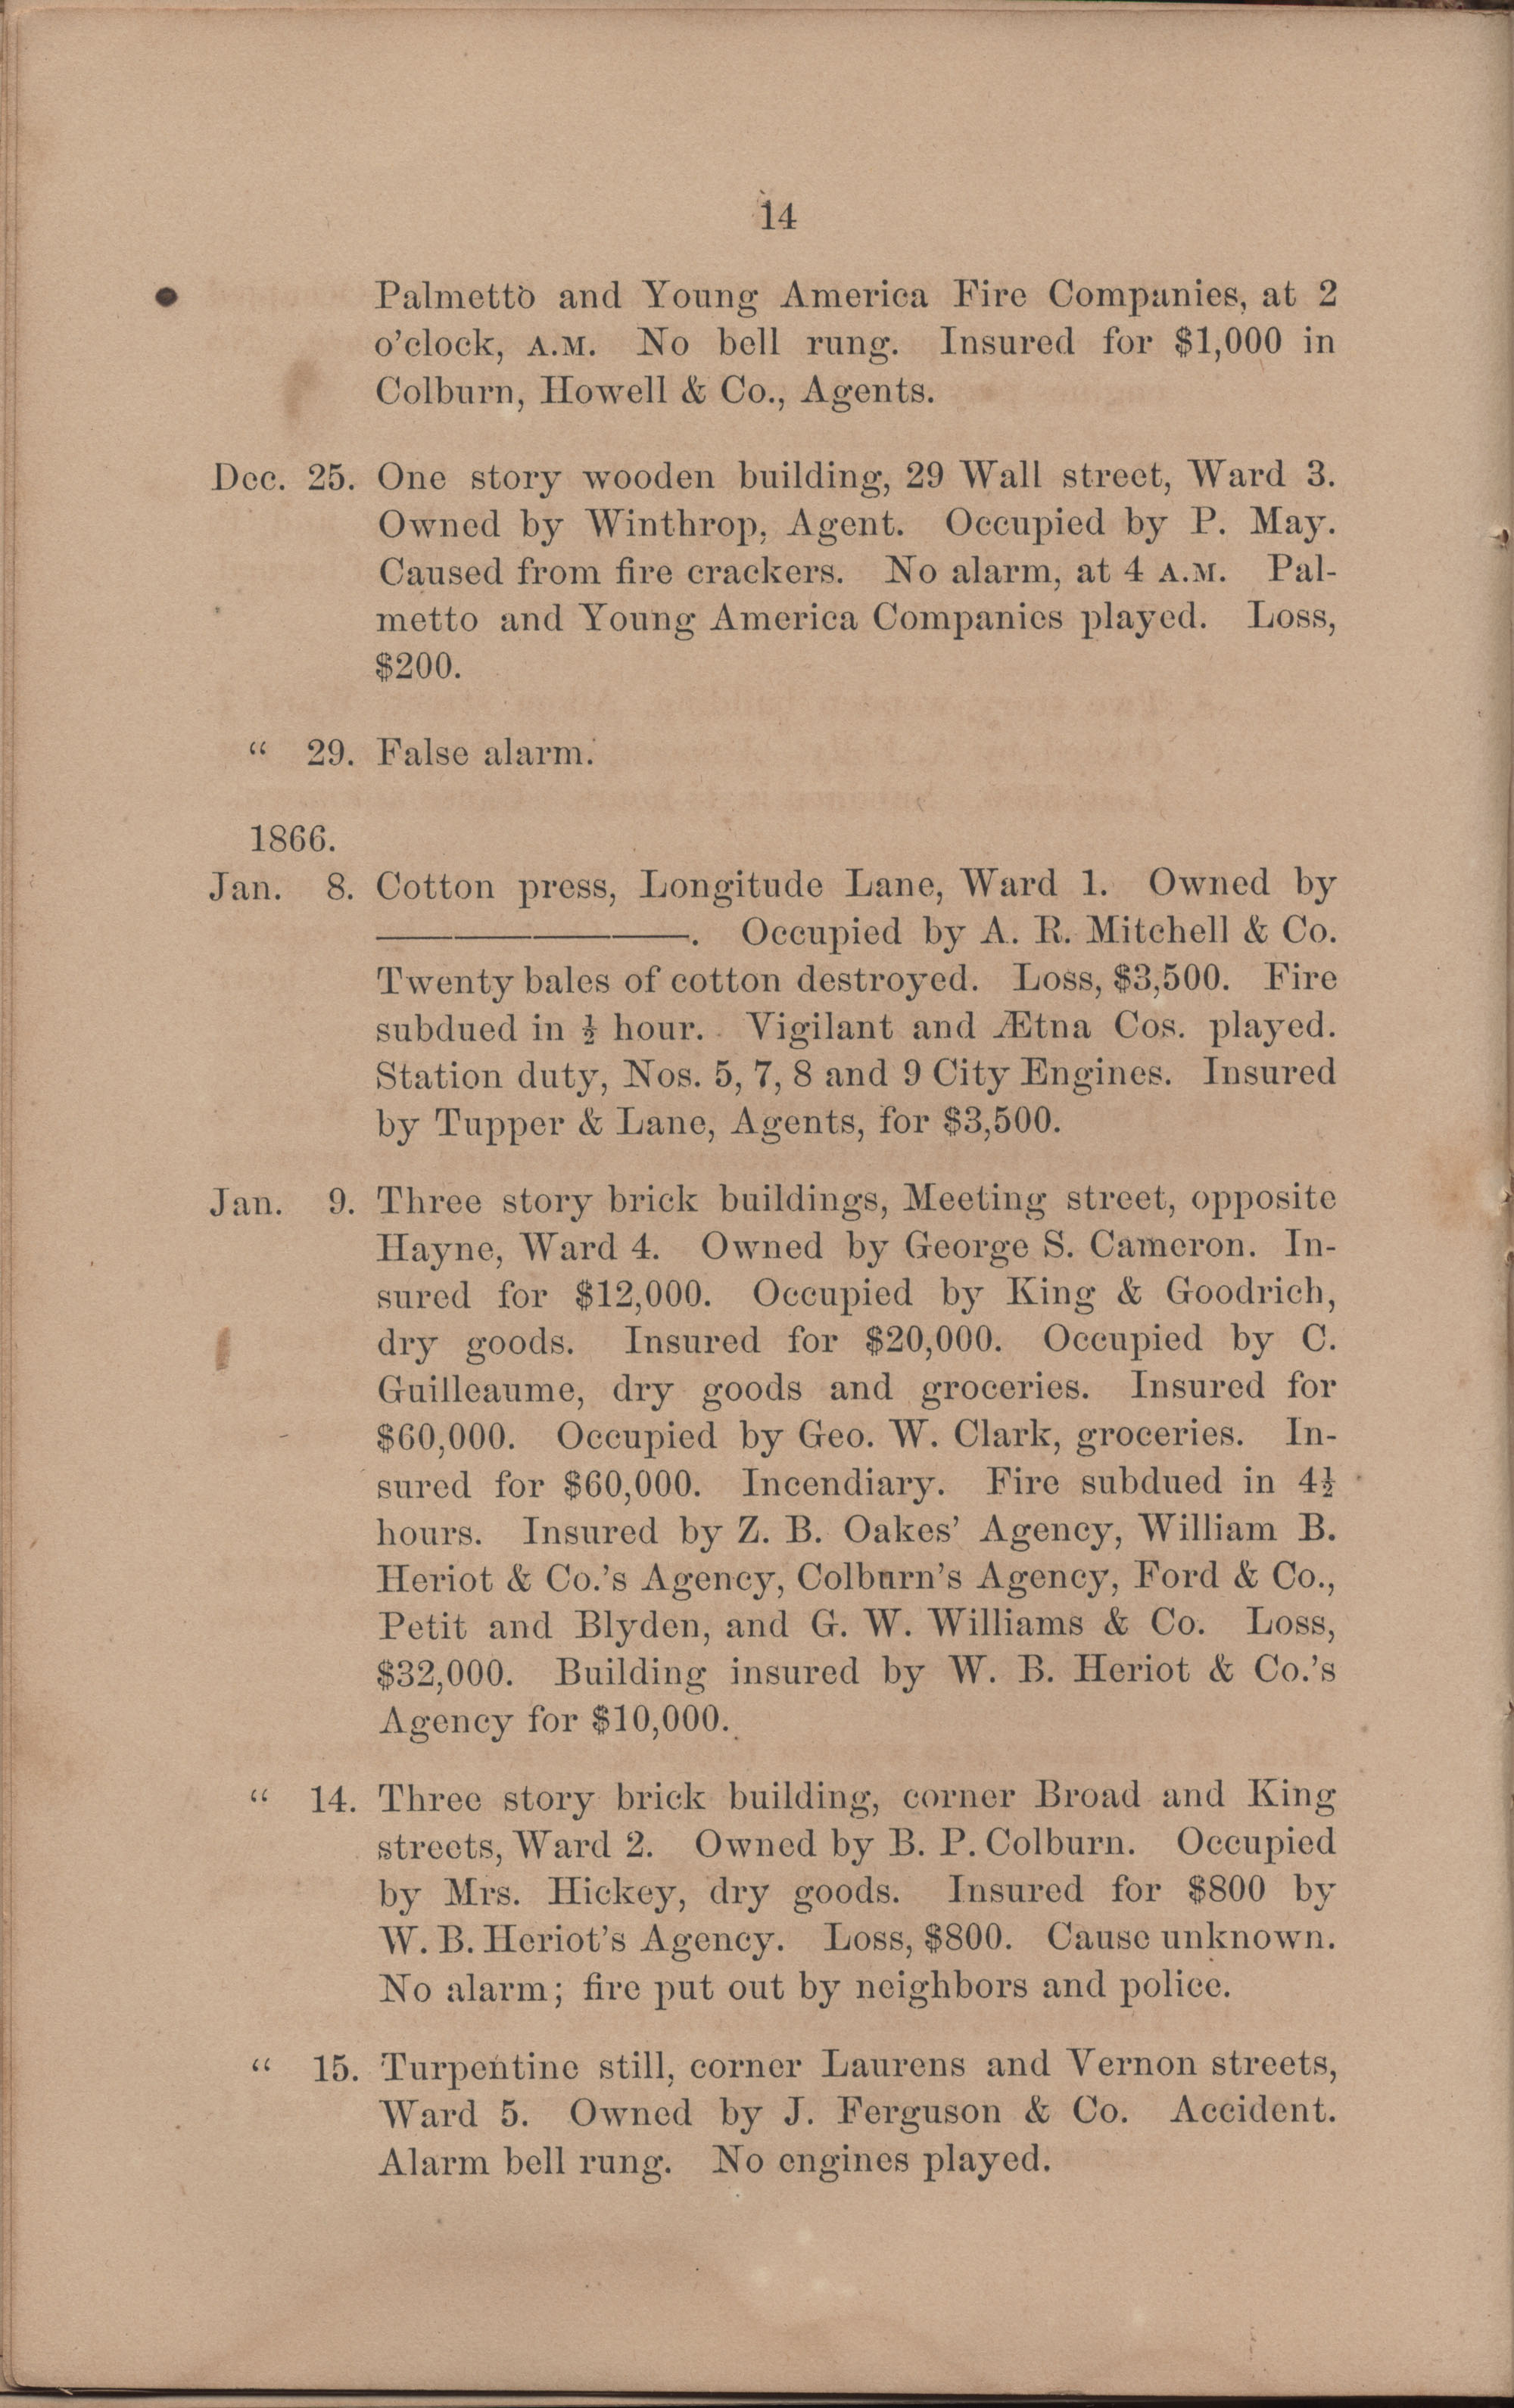 Annual Report of the Chief of the Fire Department of the City of Charleston, page 110